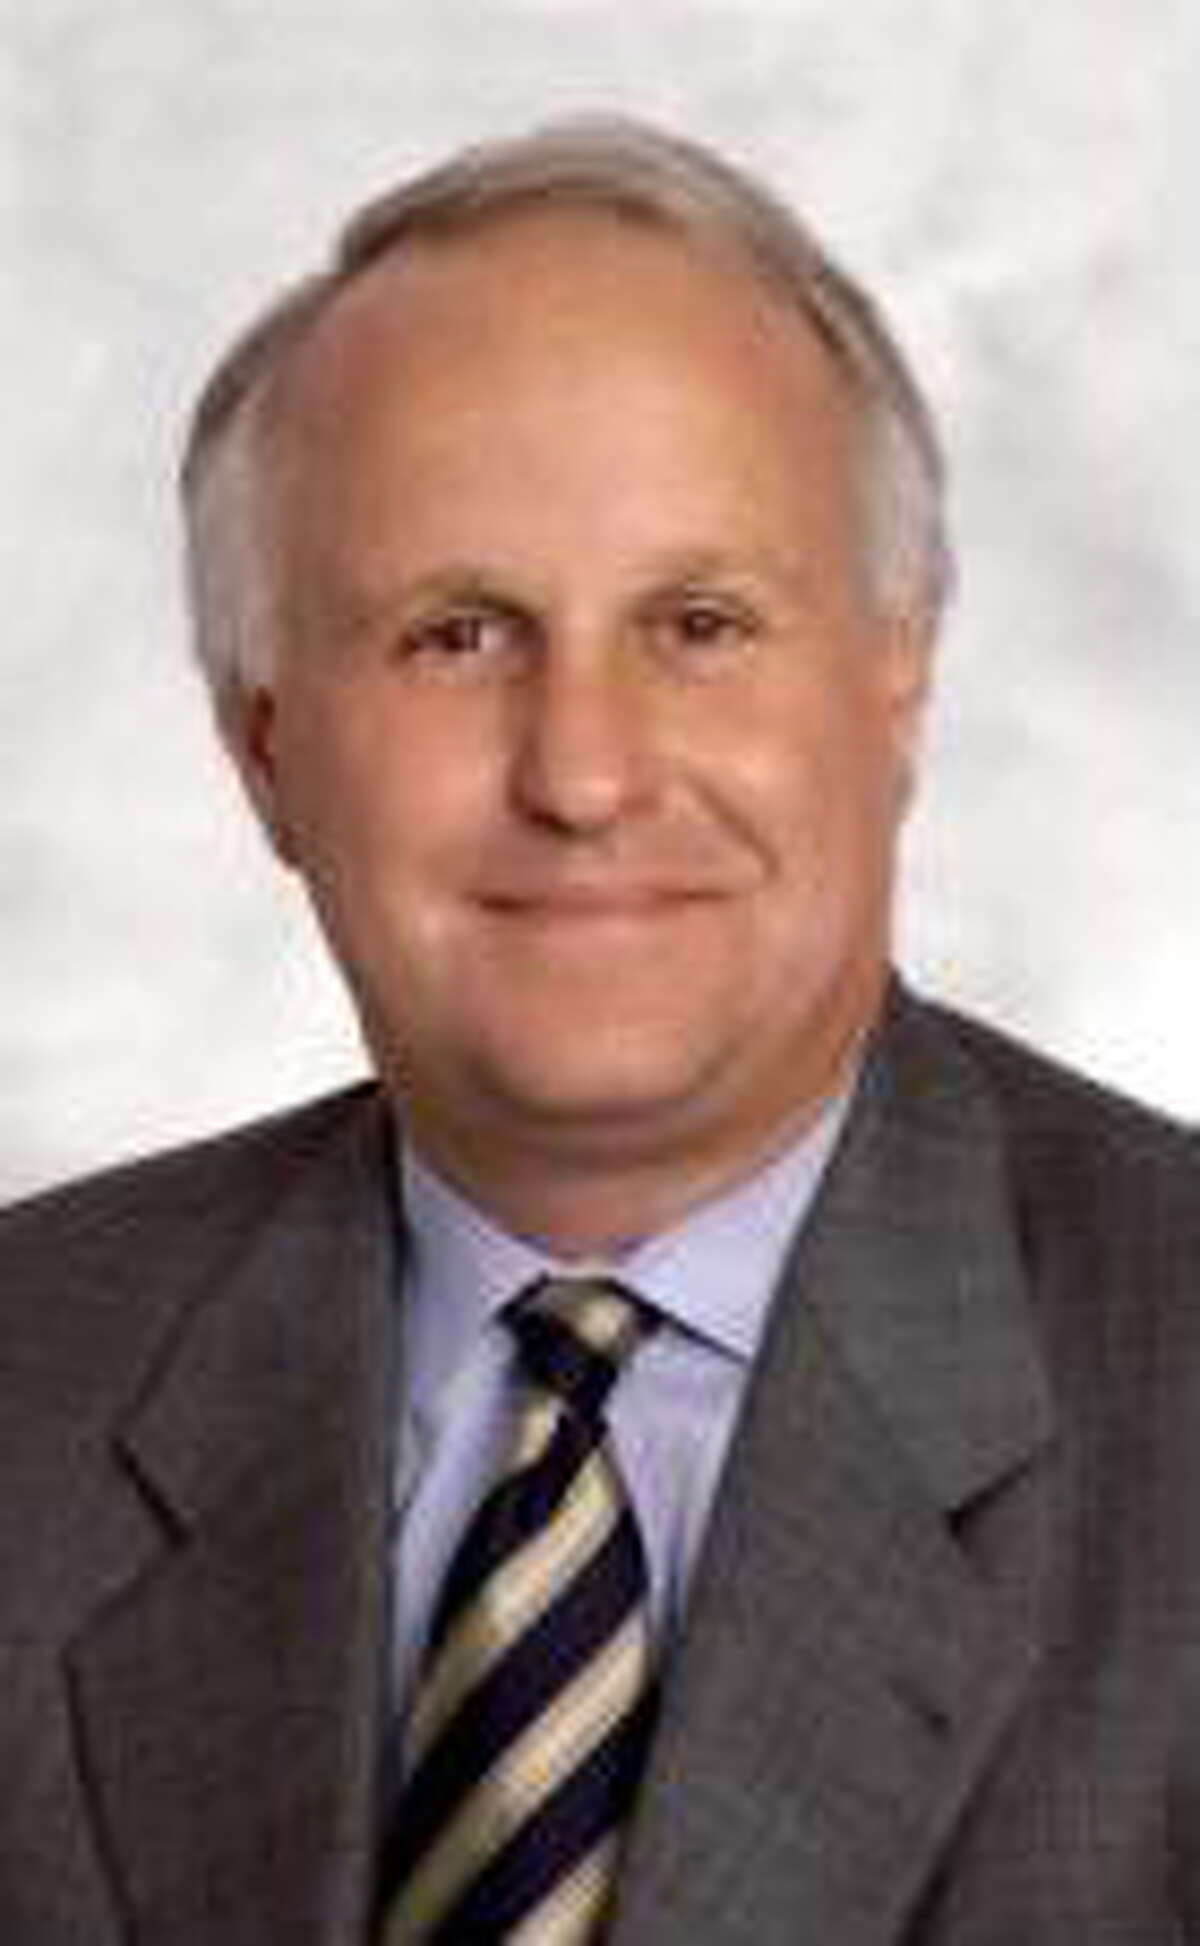 Marc B. Lautenbach has been named President and Chief Executive Officer of Pitney Bowes, succeeding Murray Martin.